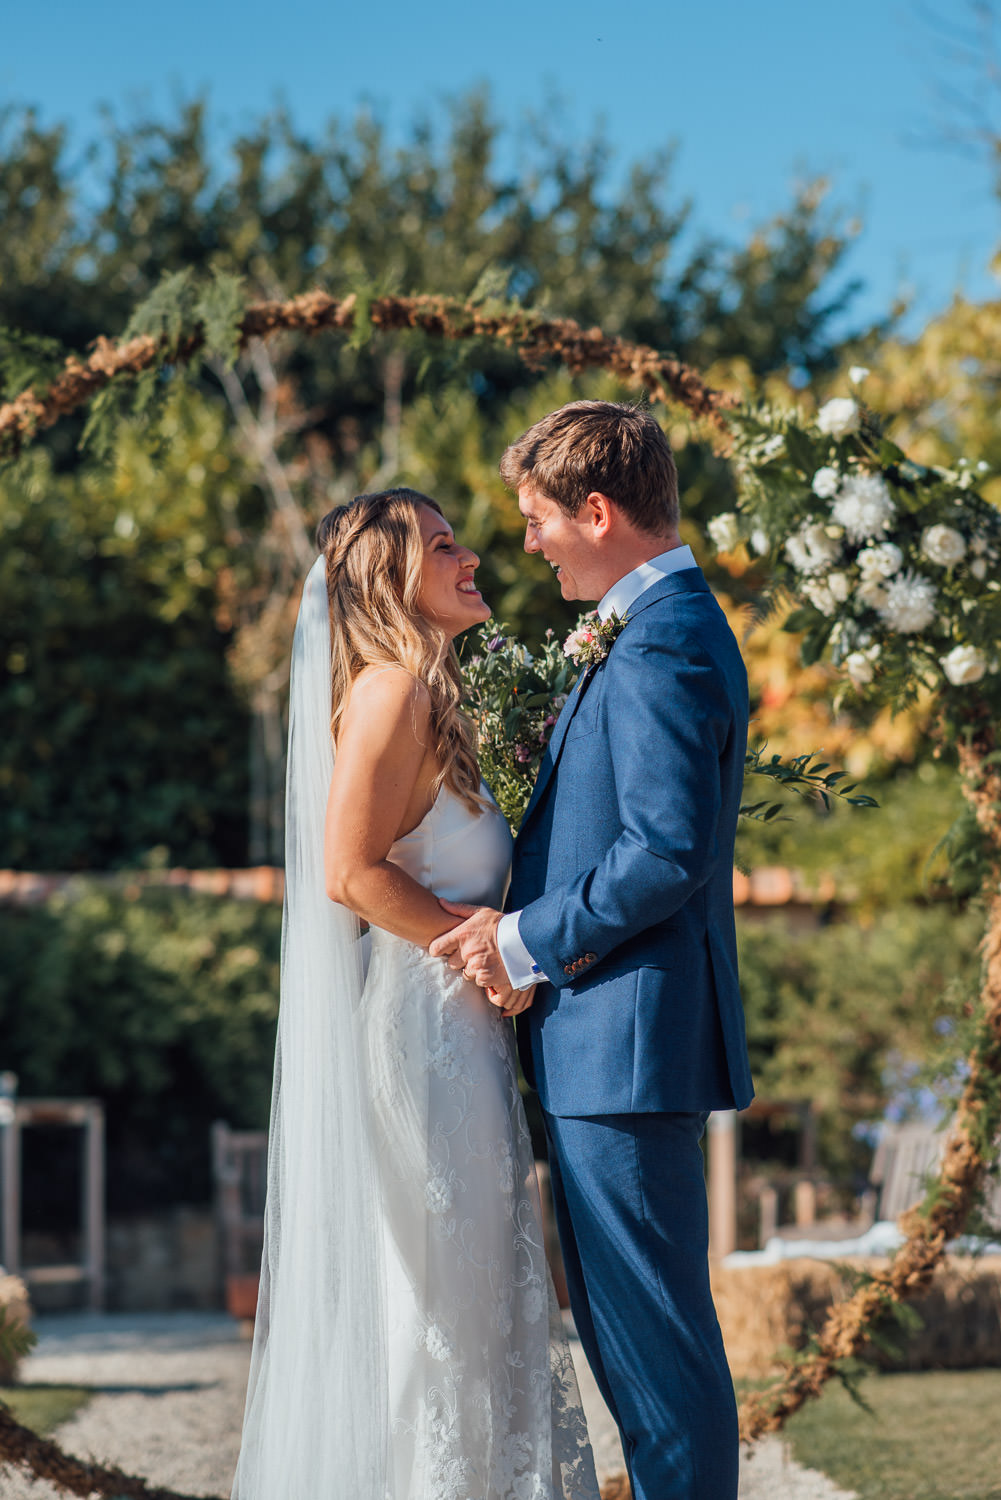 floral moon arch in oxleaze barn wedding